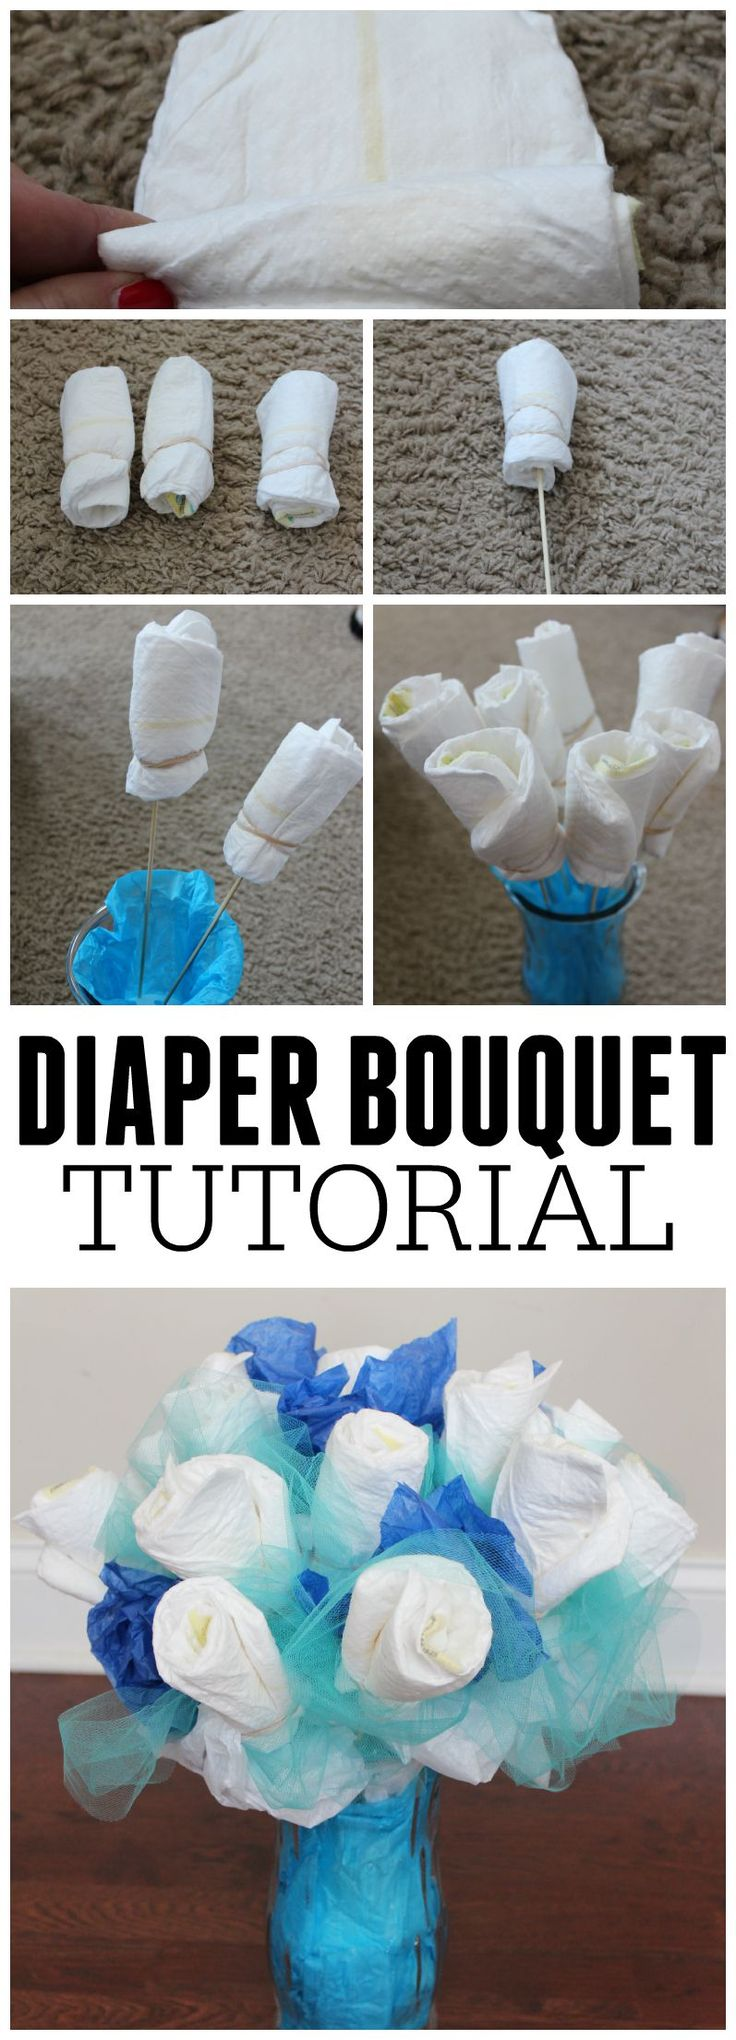 unique homemade baby shower invitation ideas%0A How To Make A Diaper Bouquet  Picture Tutorial